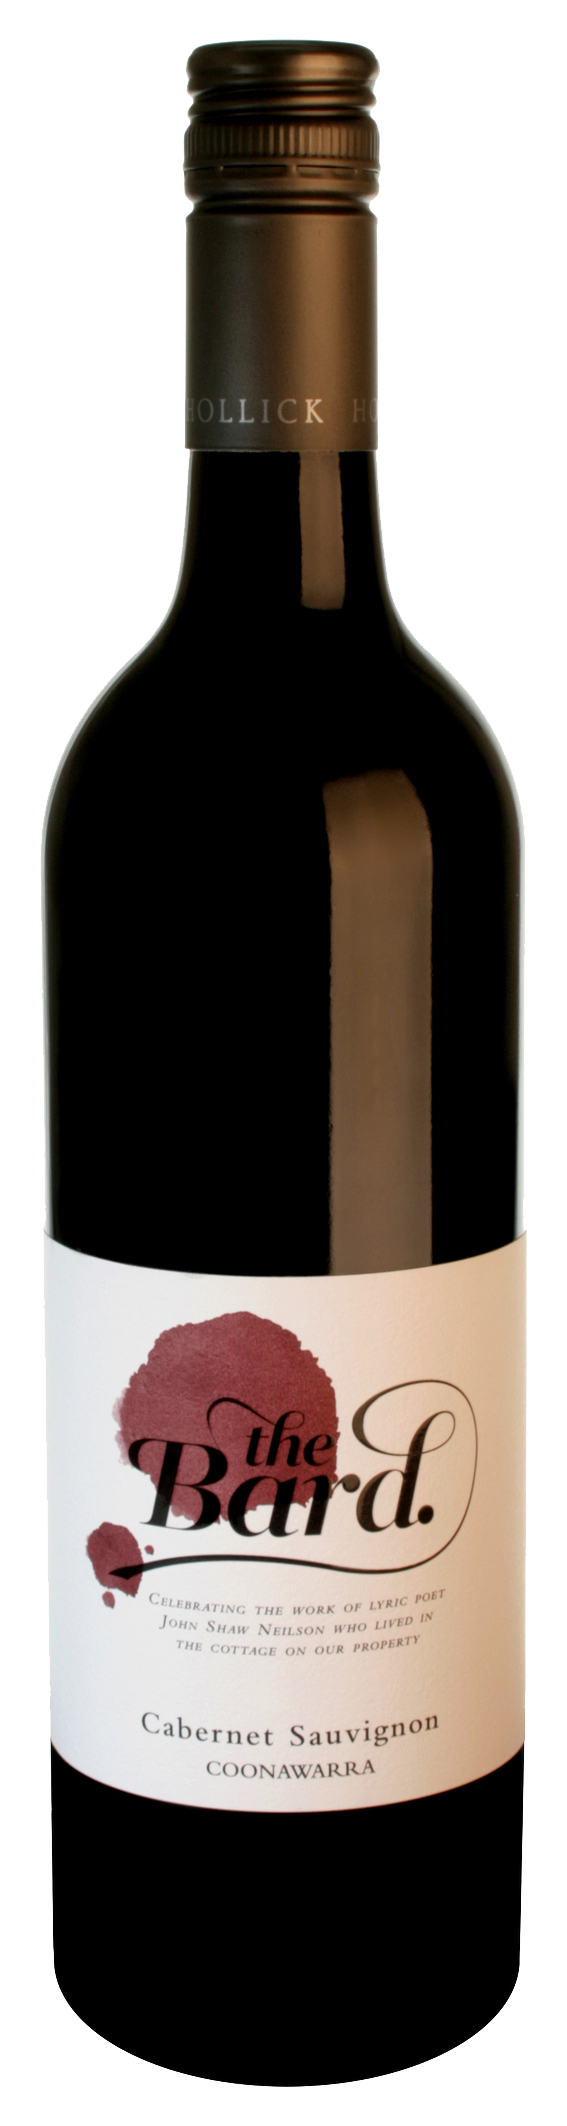 The Bard Cabernet Sauvignon